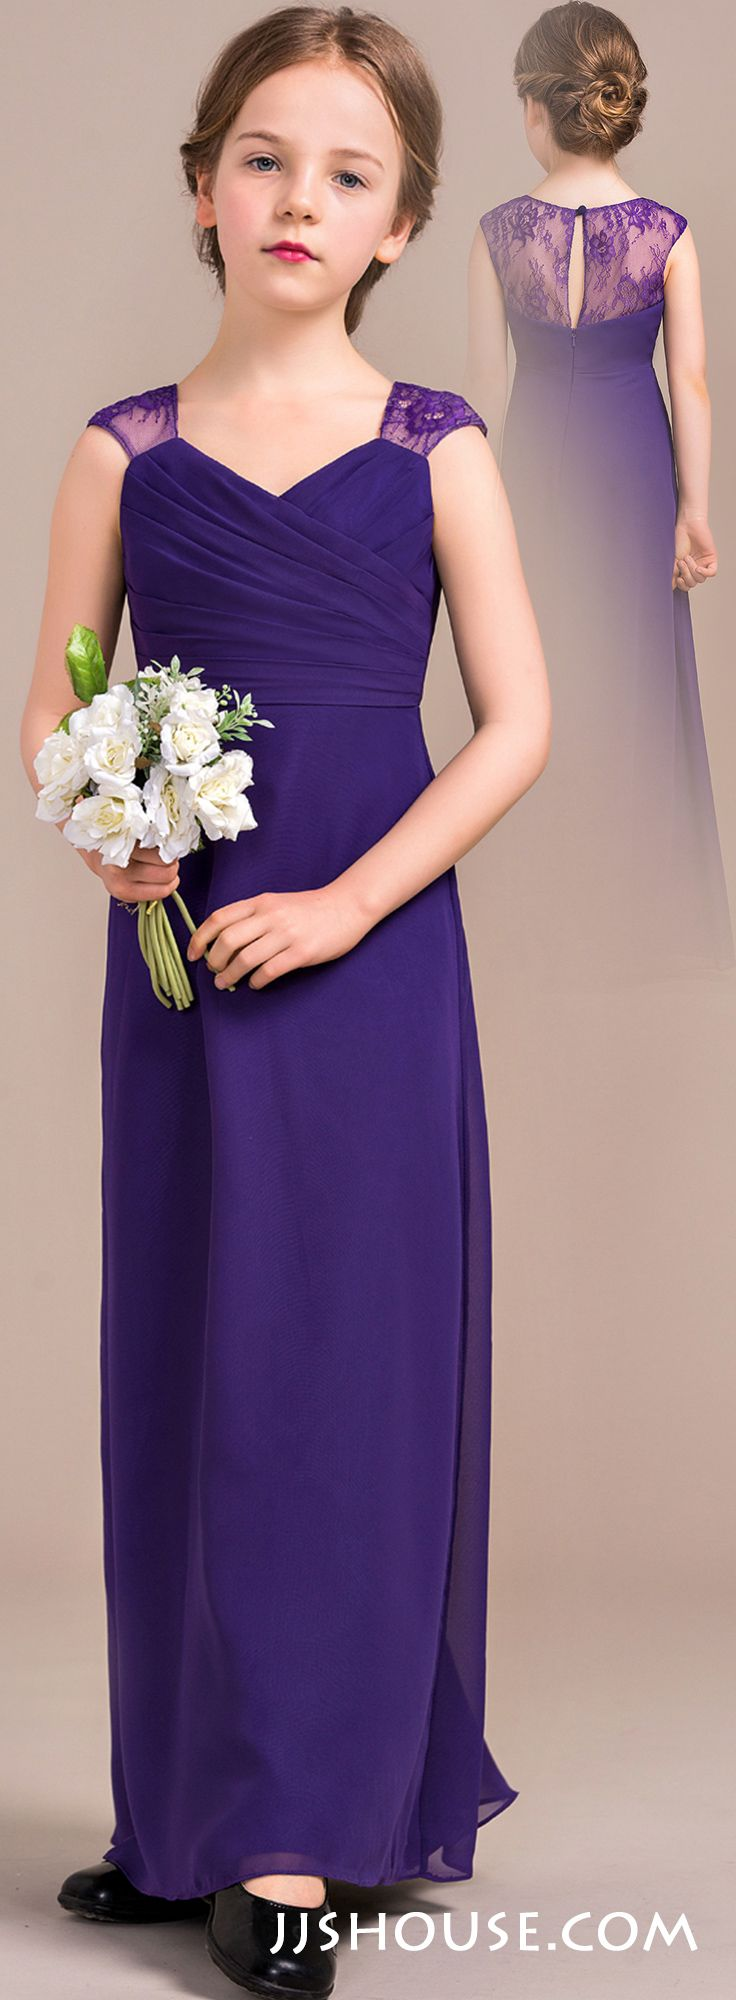 Best 25 junior bridesmaid dresses ideas on pinterest junior your junior bridesmaid will love this stunning elegant long dress ombrellifo Images